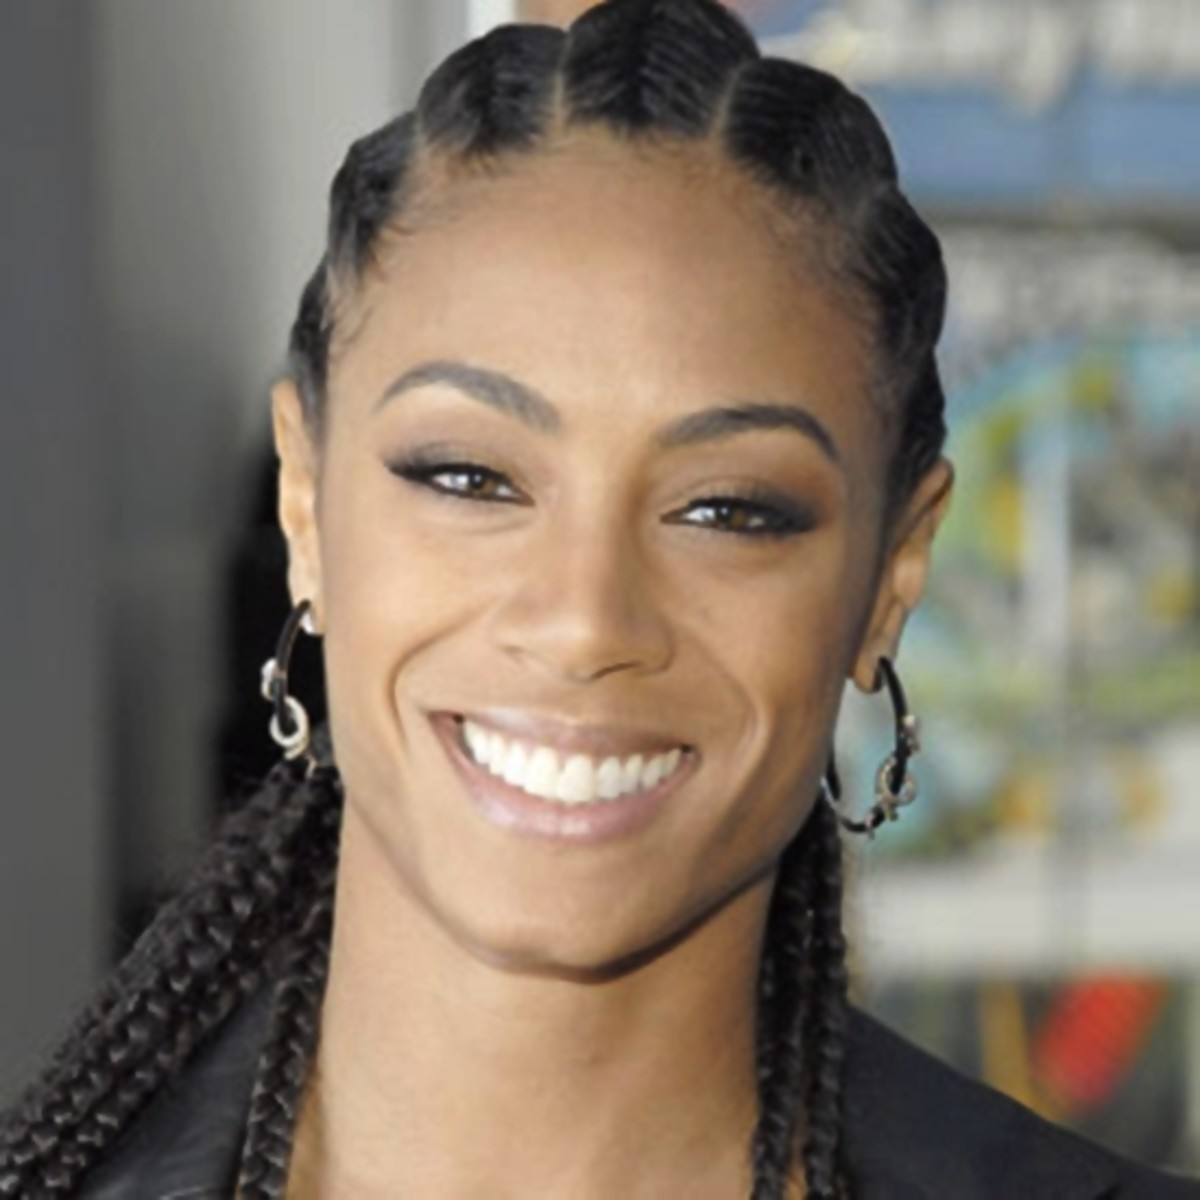 Jada Pinkett  - 2013 Braided Hairstyles - Fun Braids and Braided Updo Hair Styles